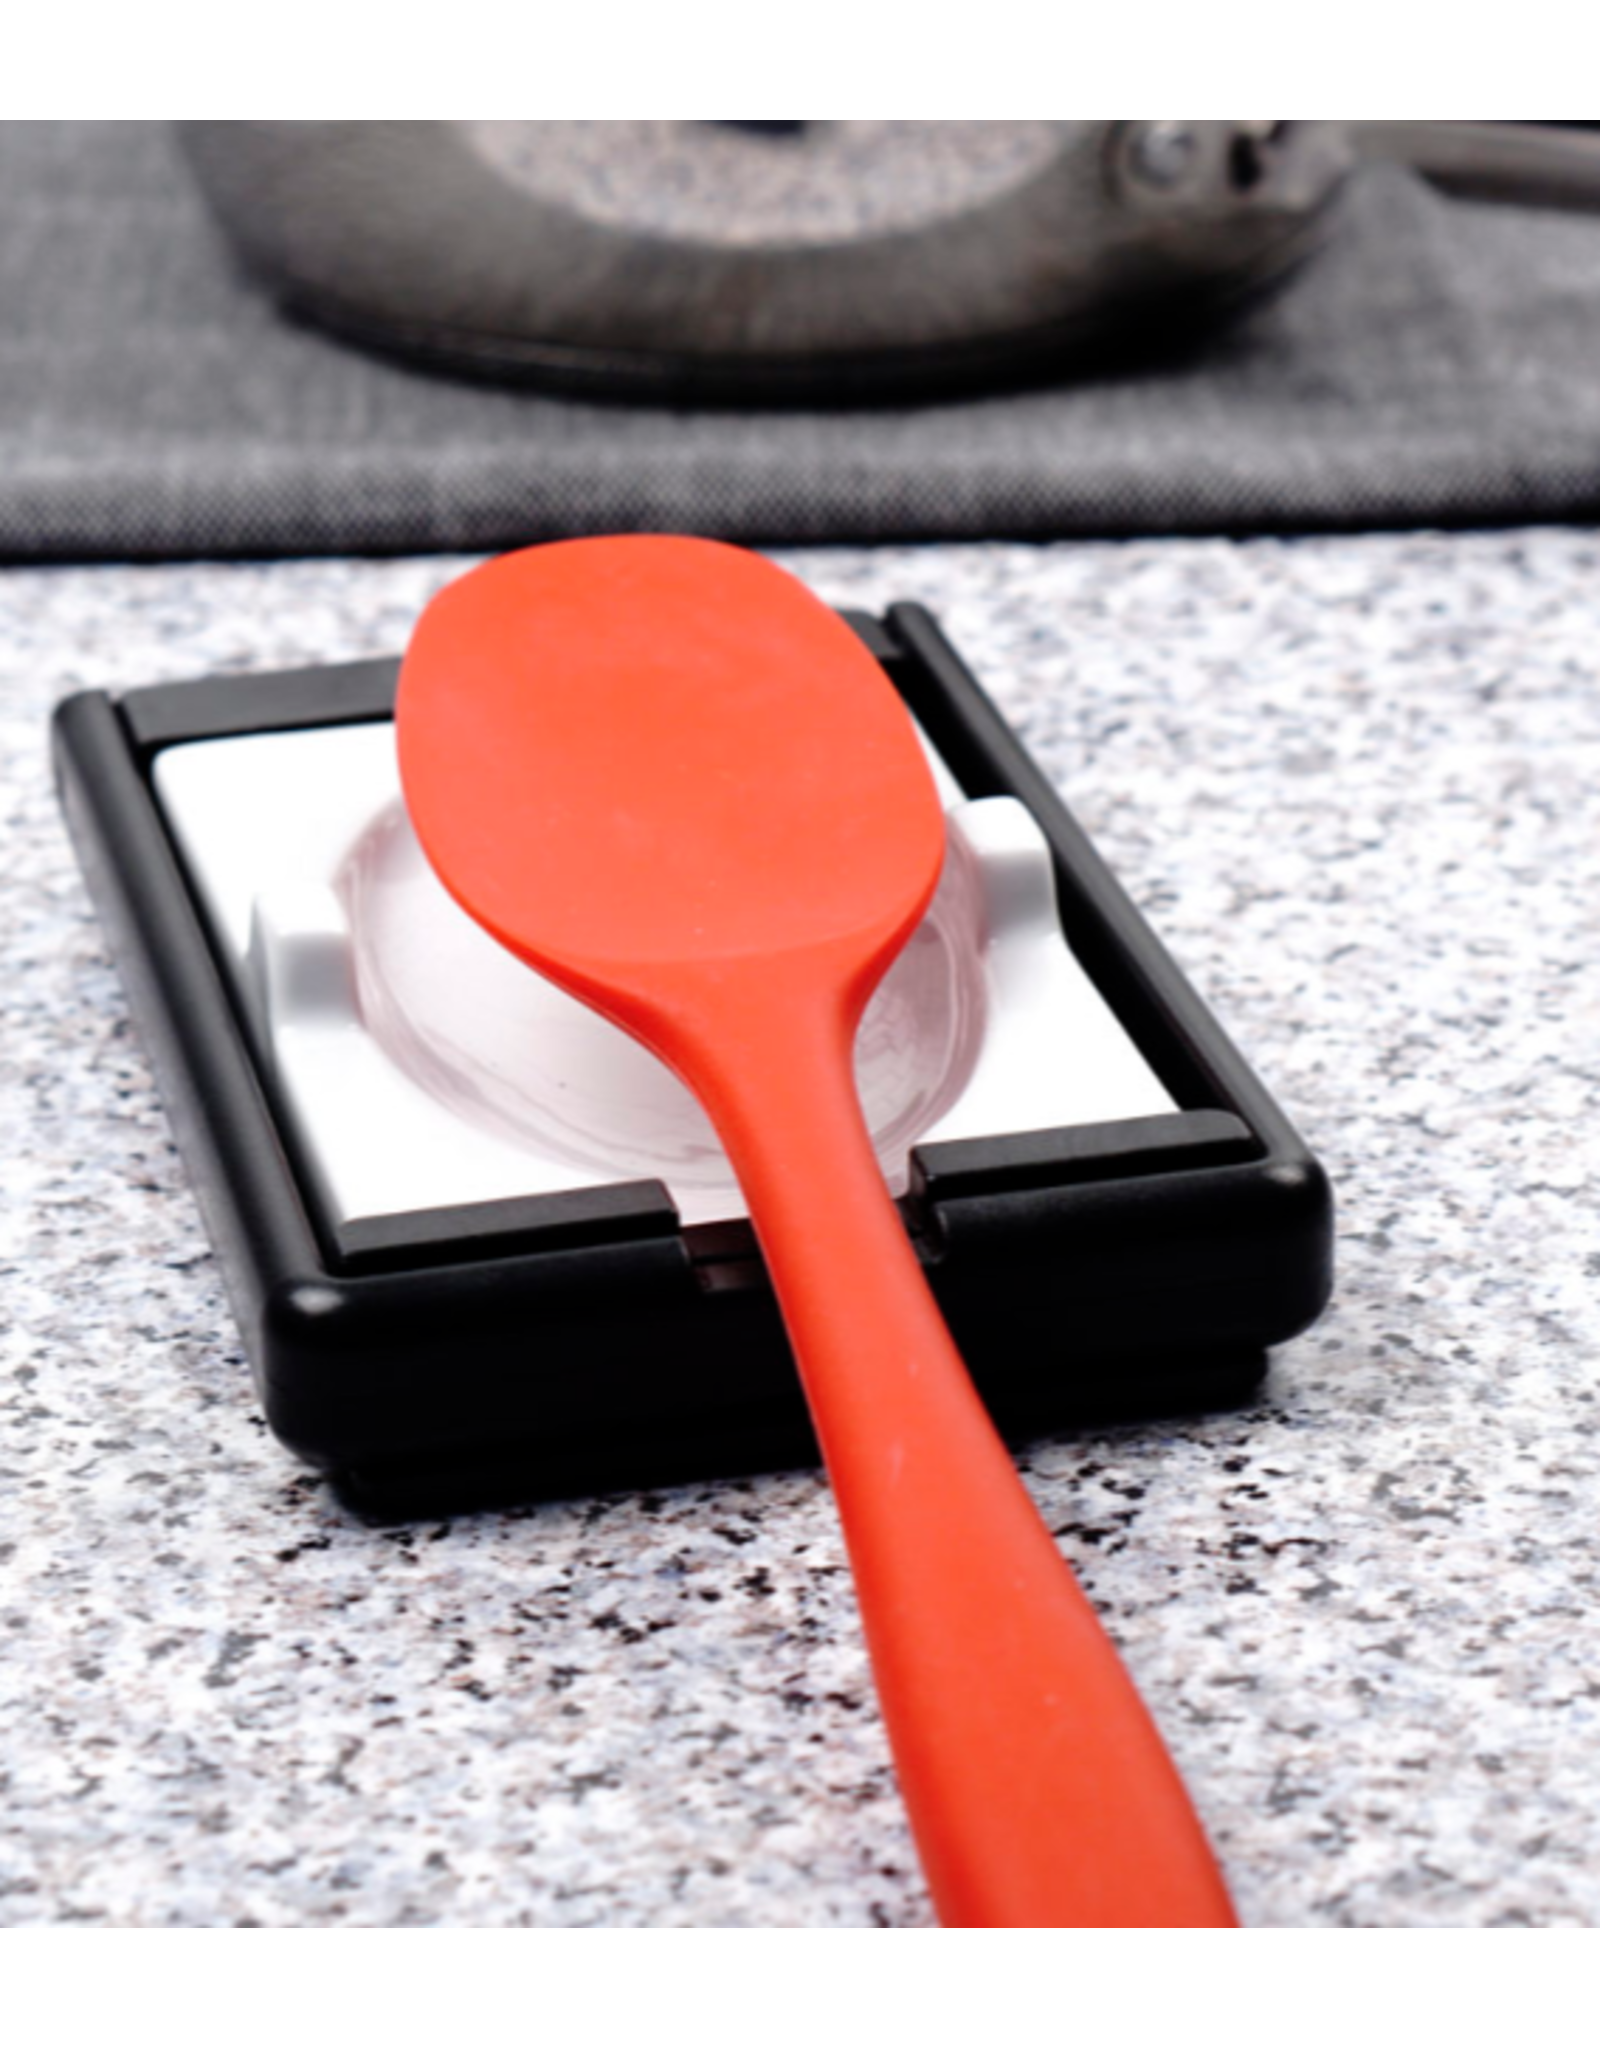 RSVP 2-in-1 Spoon & Lid Rest